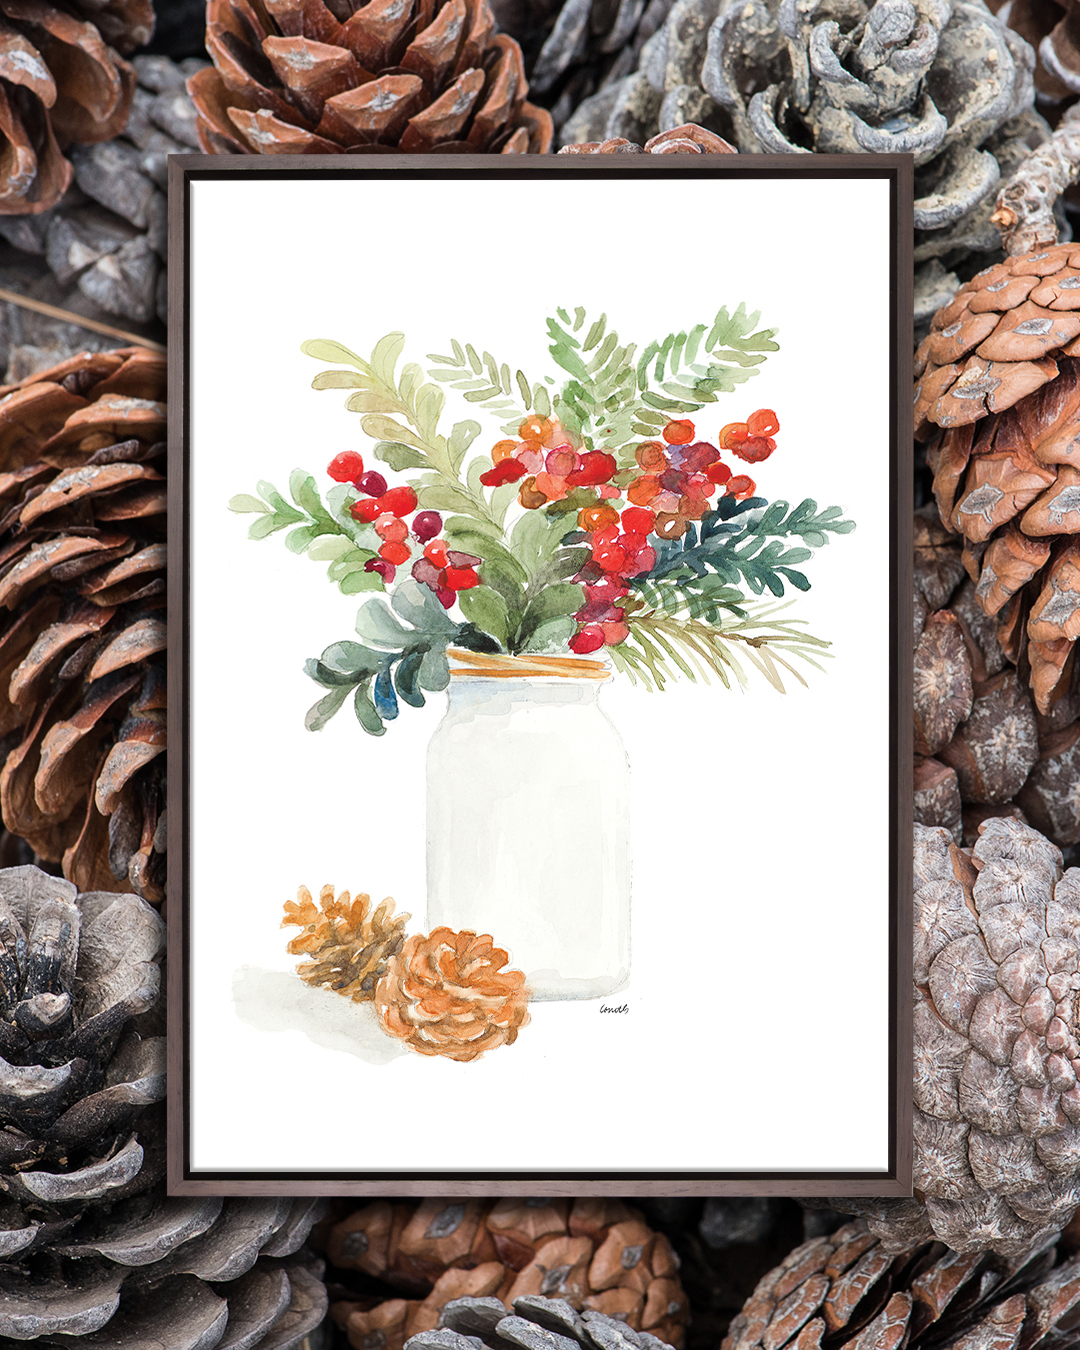 White mason jar with holly and mistletoe in it near to two pine cones on a white background with a dark wood frame